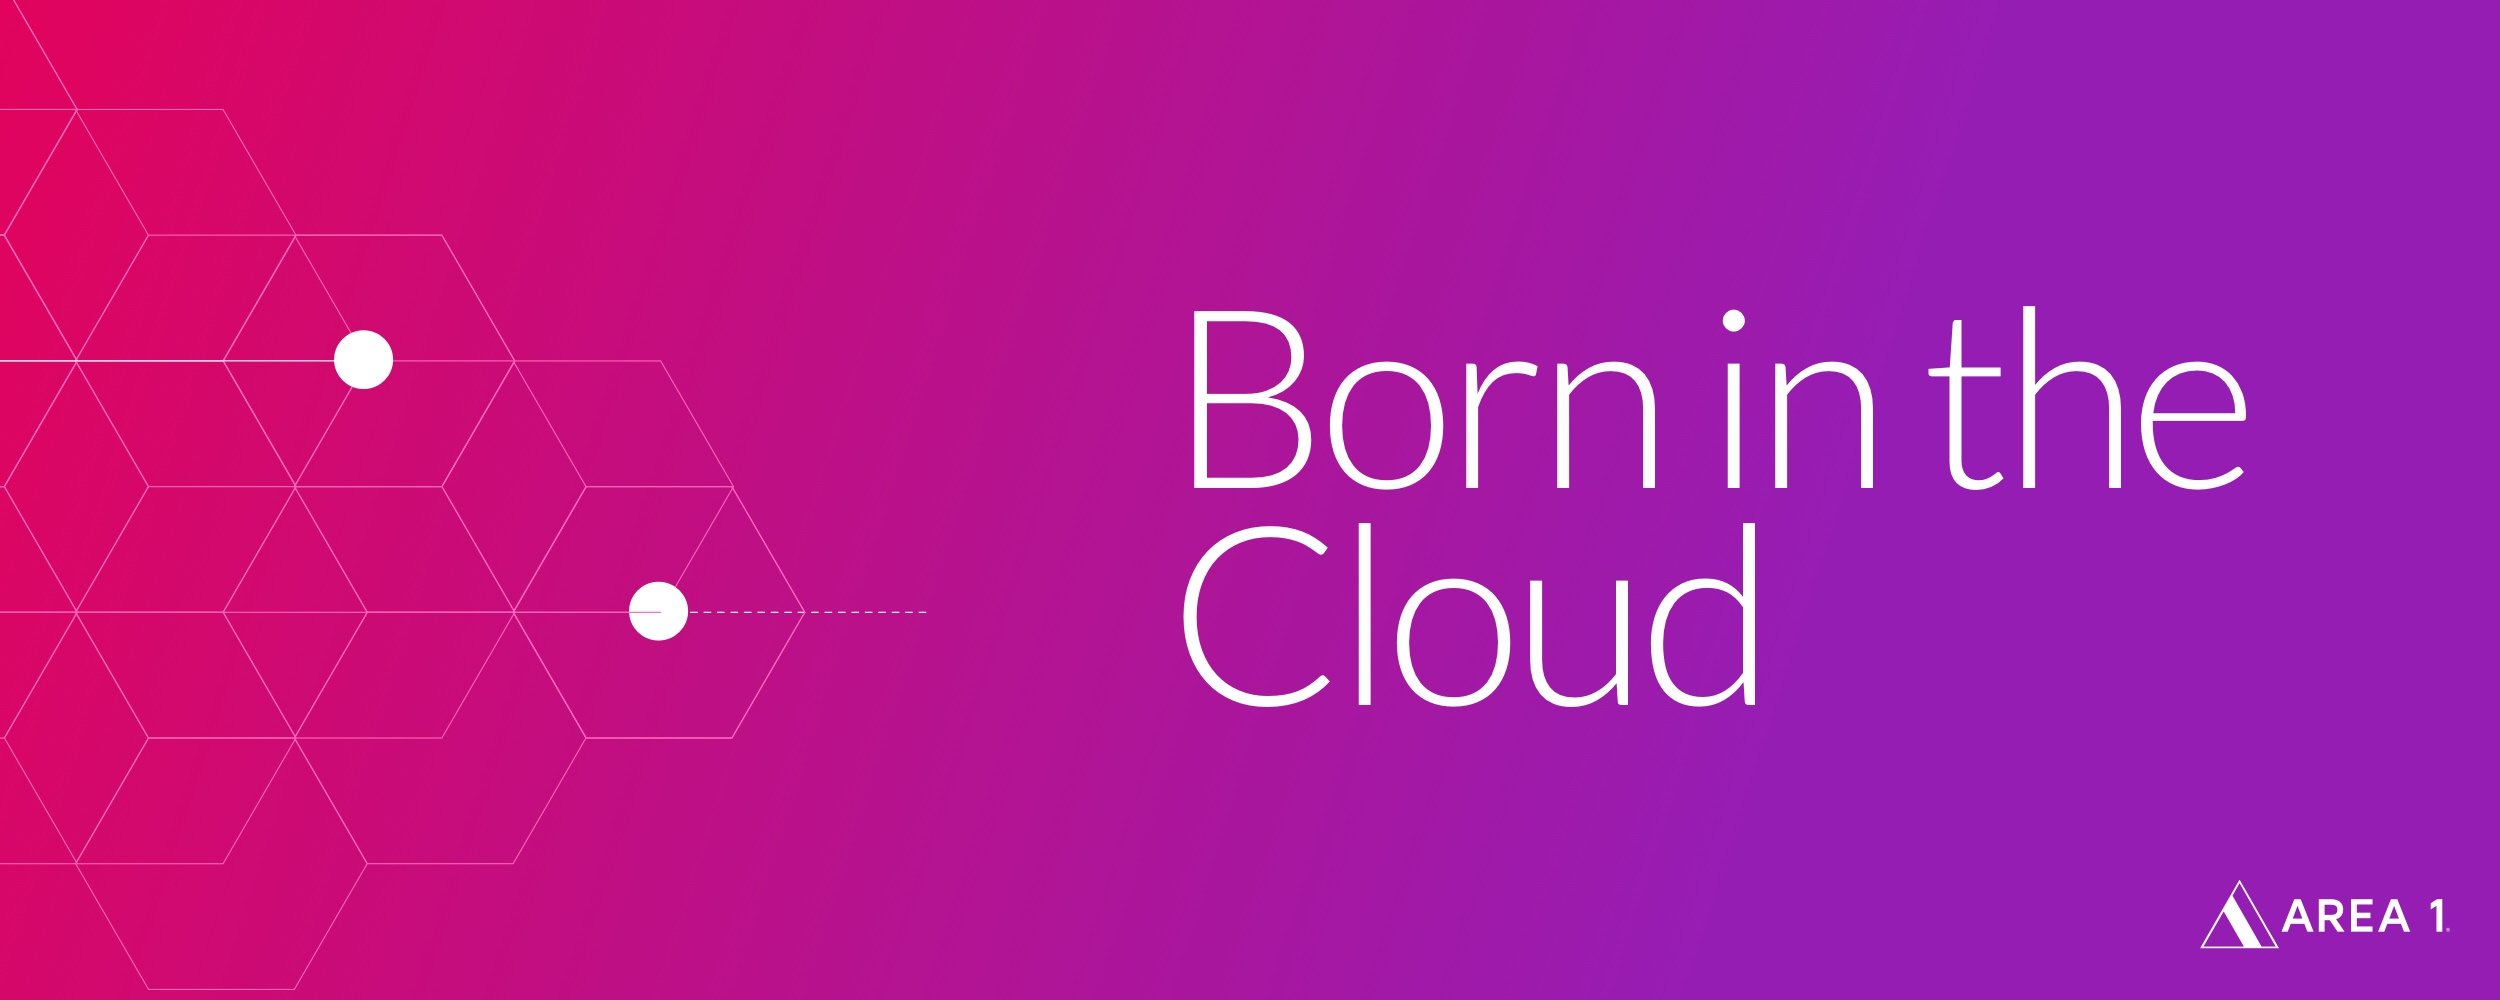 Born in the cloud